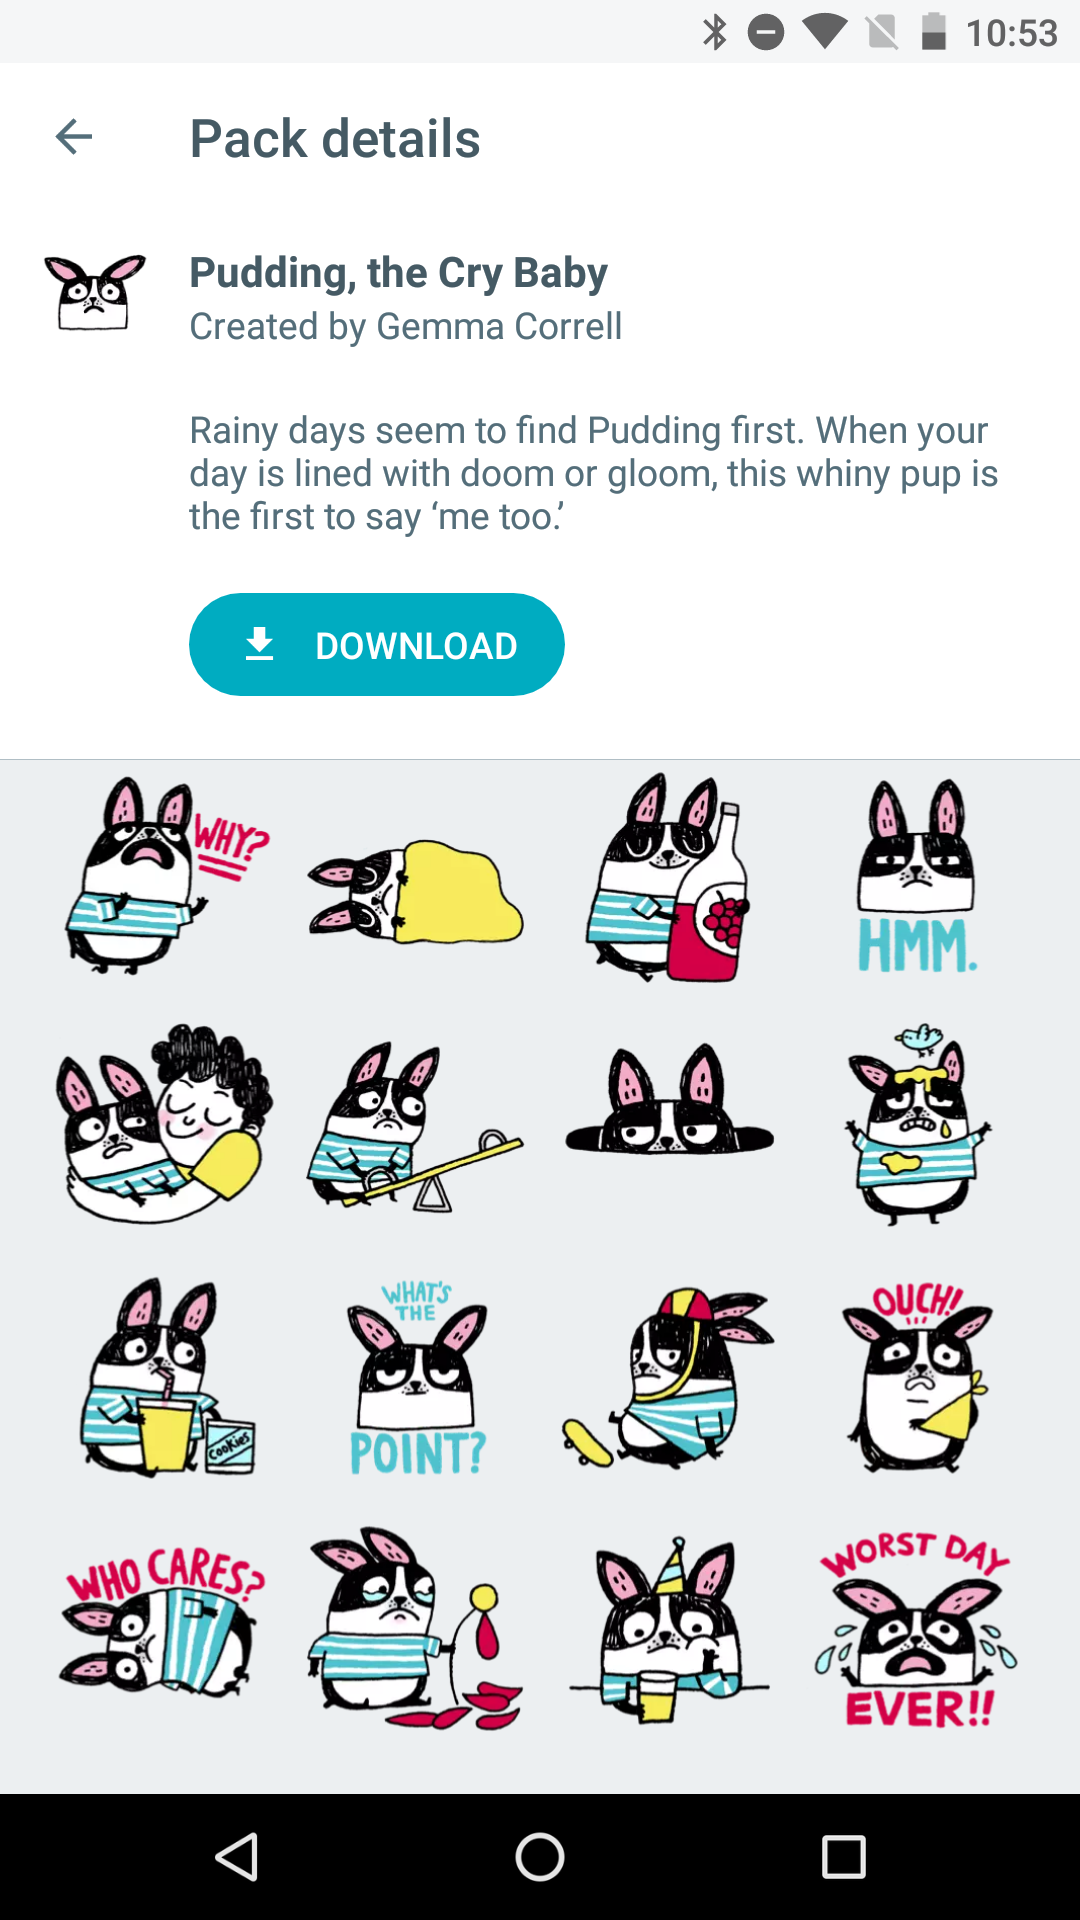 google-allo-sticker-packs-pudding-crybaby